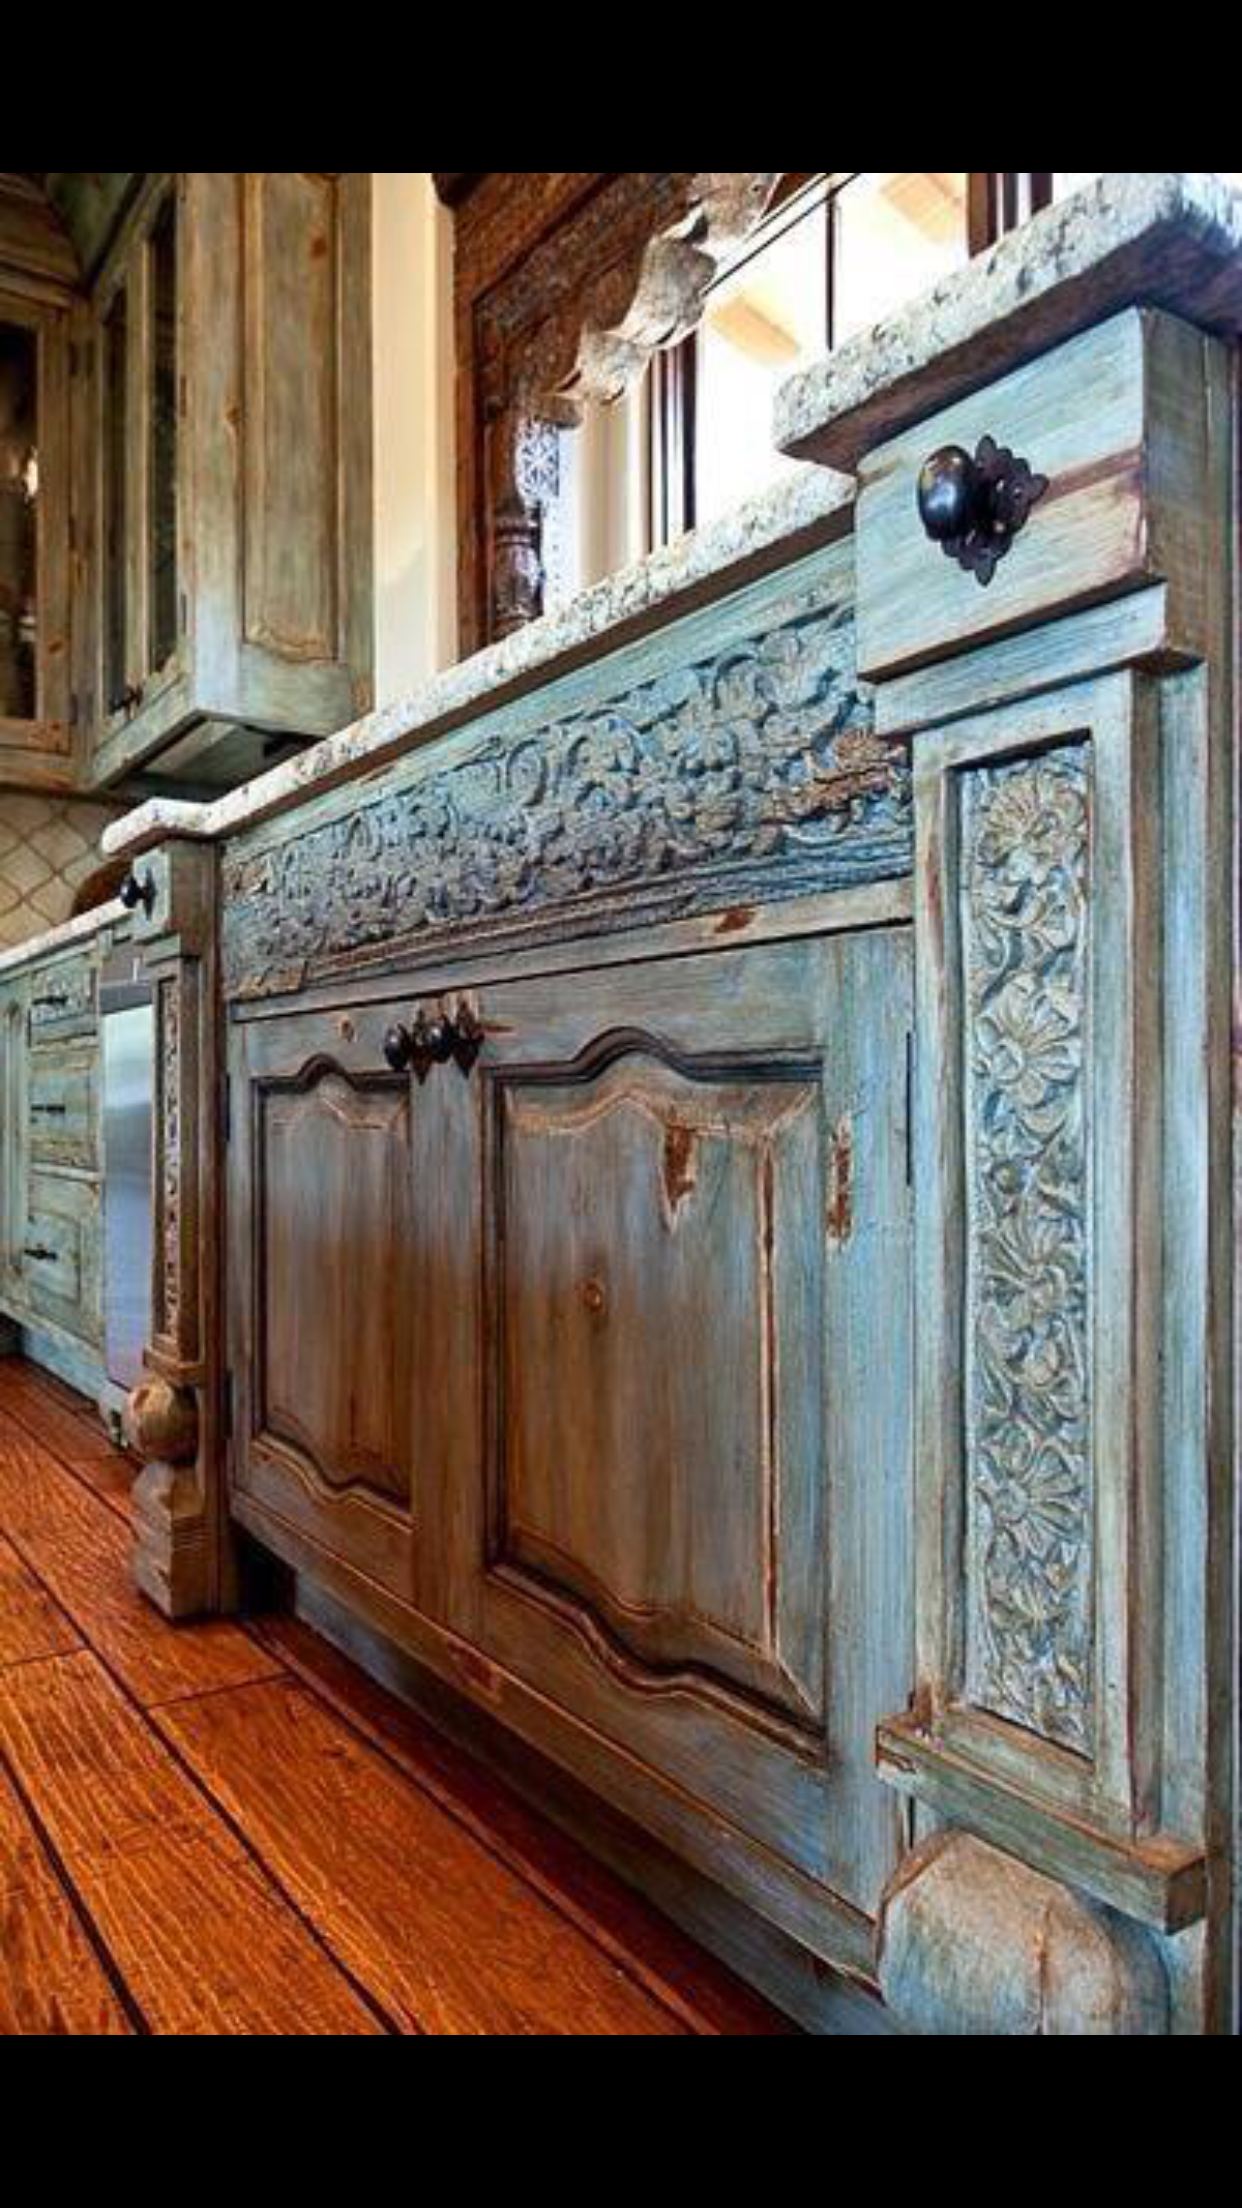 Old World Style Rustic Kitchen Cabinets Shabby Chic Kitchen Rustic Kitchen Decor